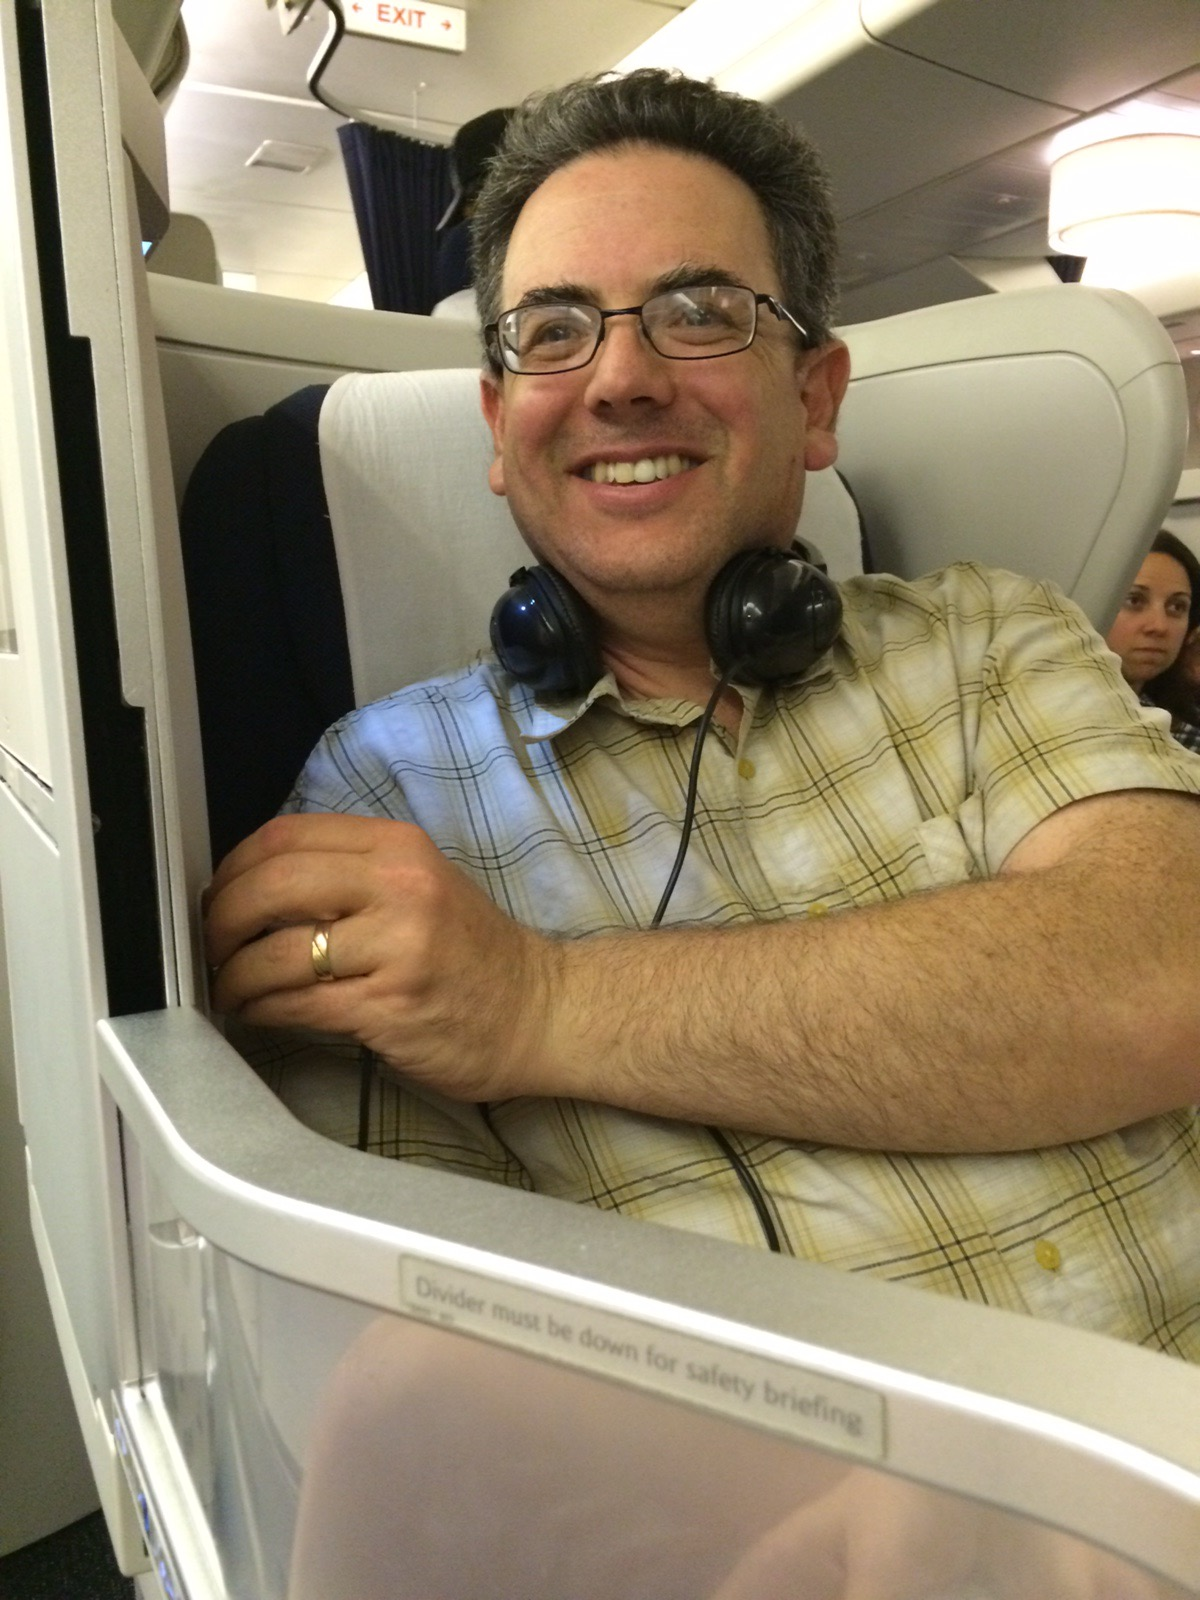 Grinning like a madman in the too comfortable business class seat.